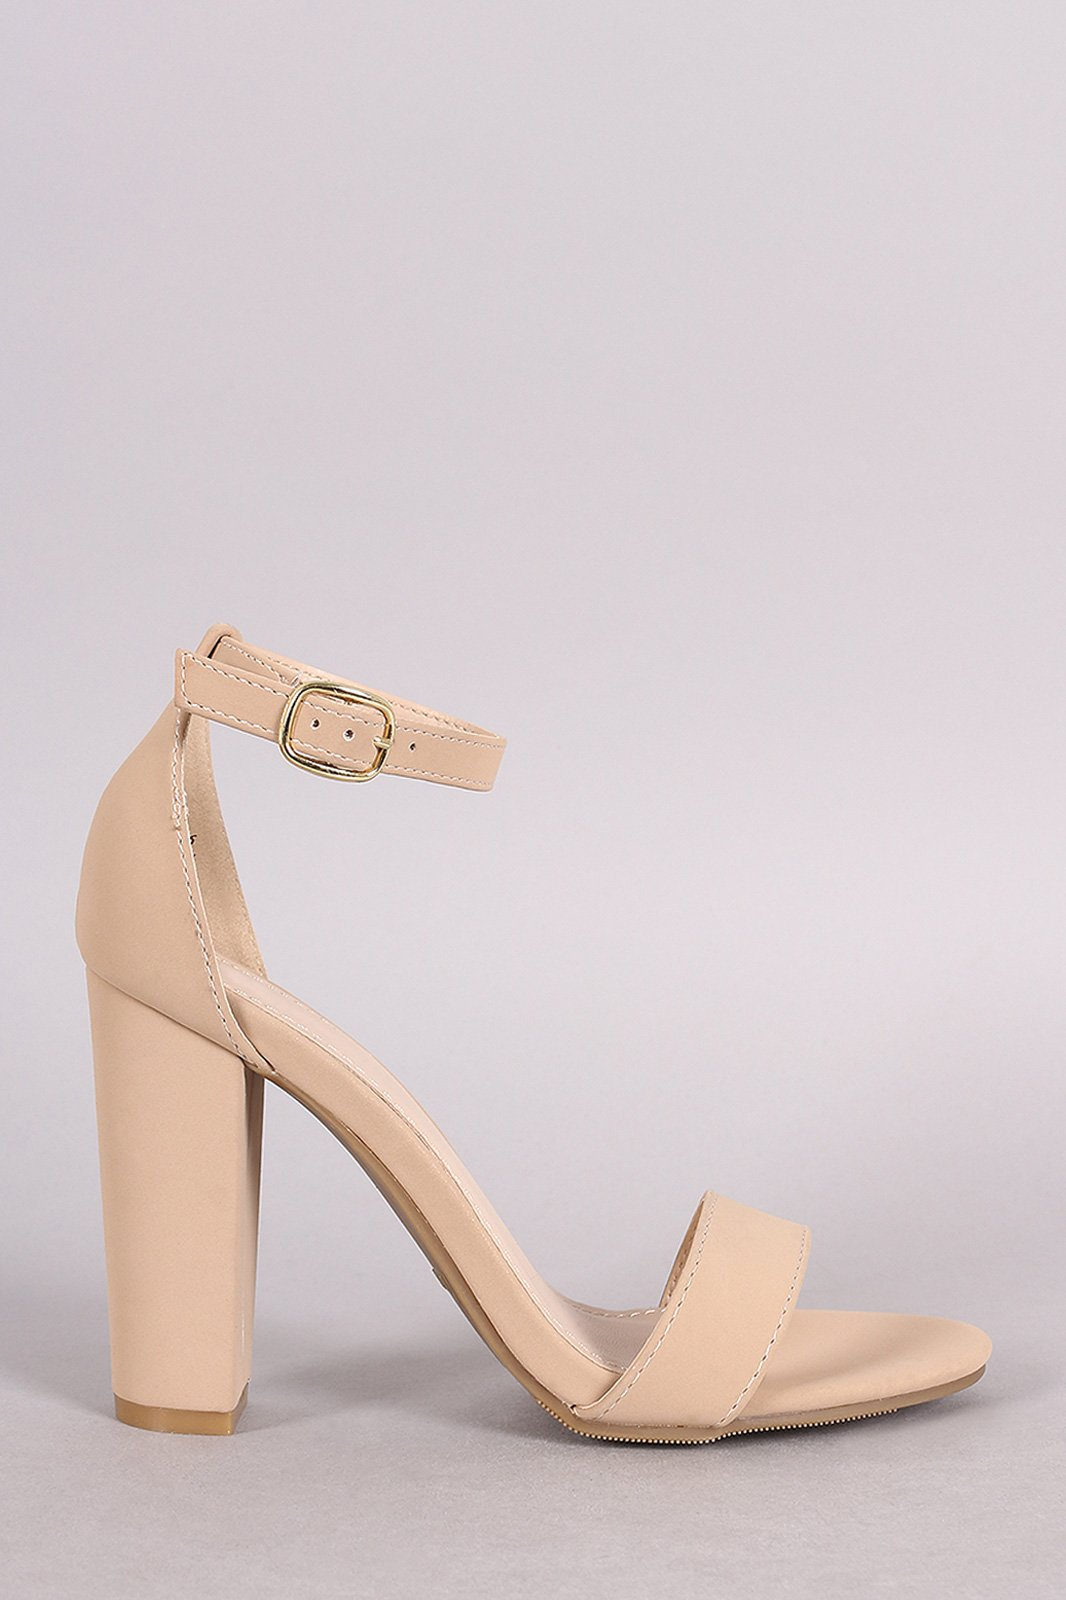 08ca9bac4e9 This alluring heel features a single band across vamp, open toe ...